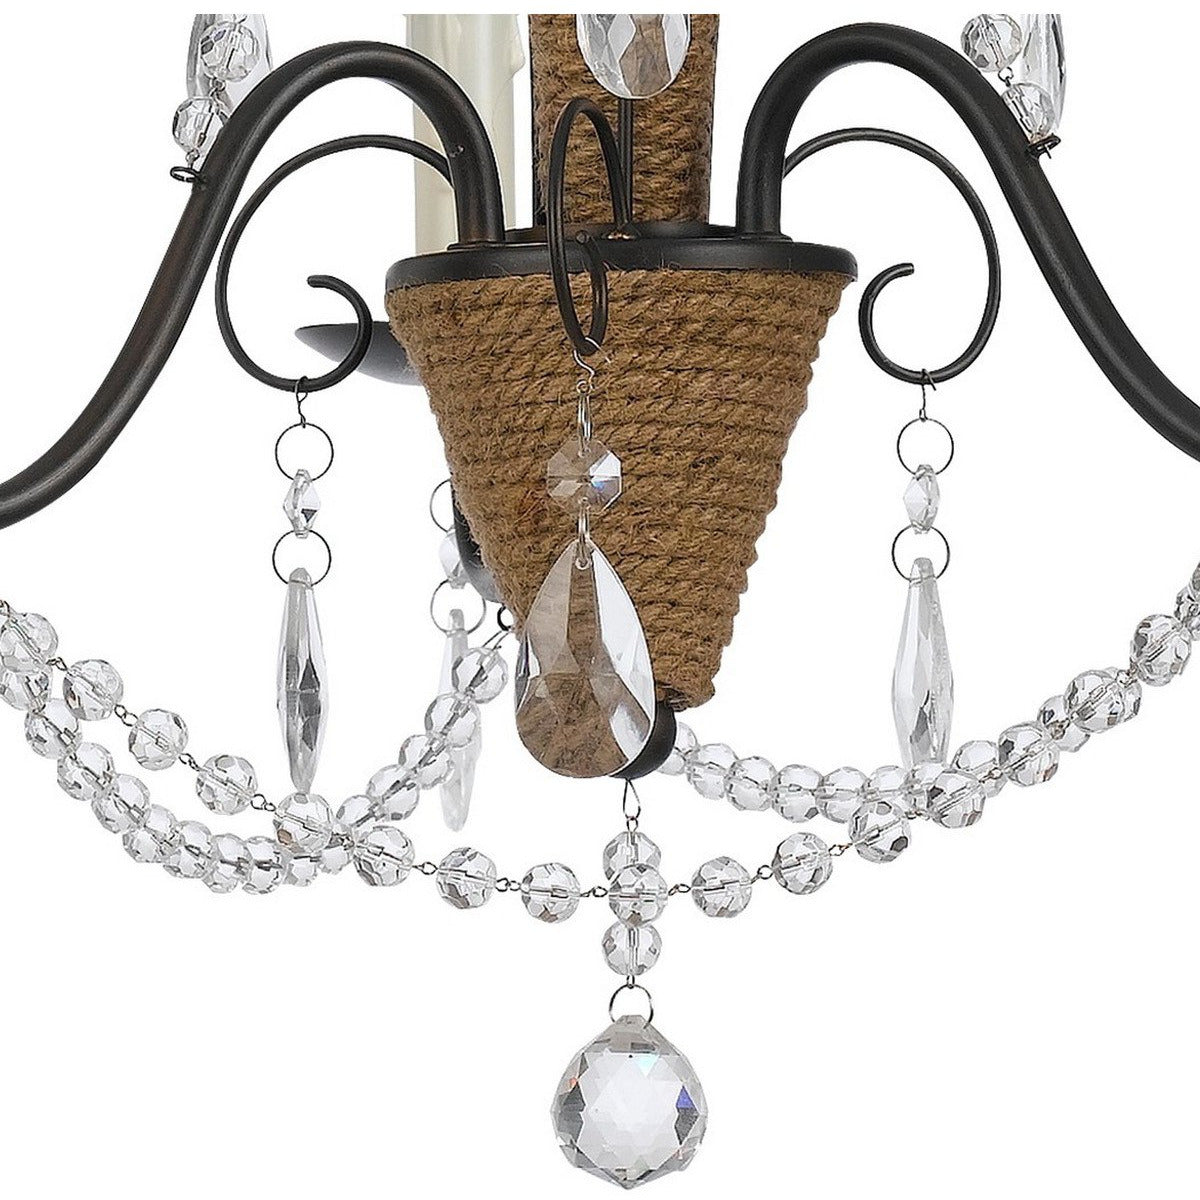 Chandeliers & Pendants - Scroll Metal Frame Chandelier With Hanging Crystals And Wrapped Rope,Bronze